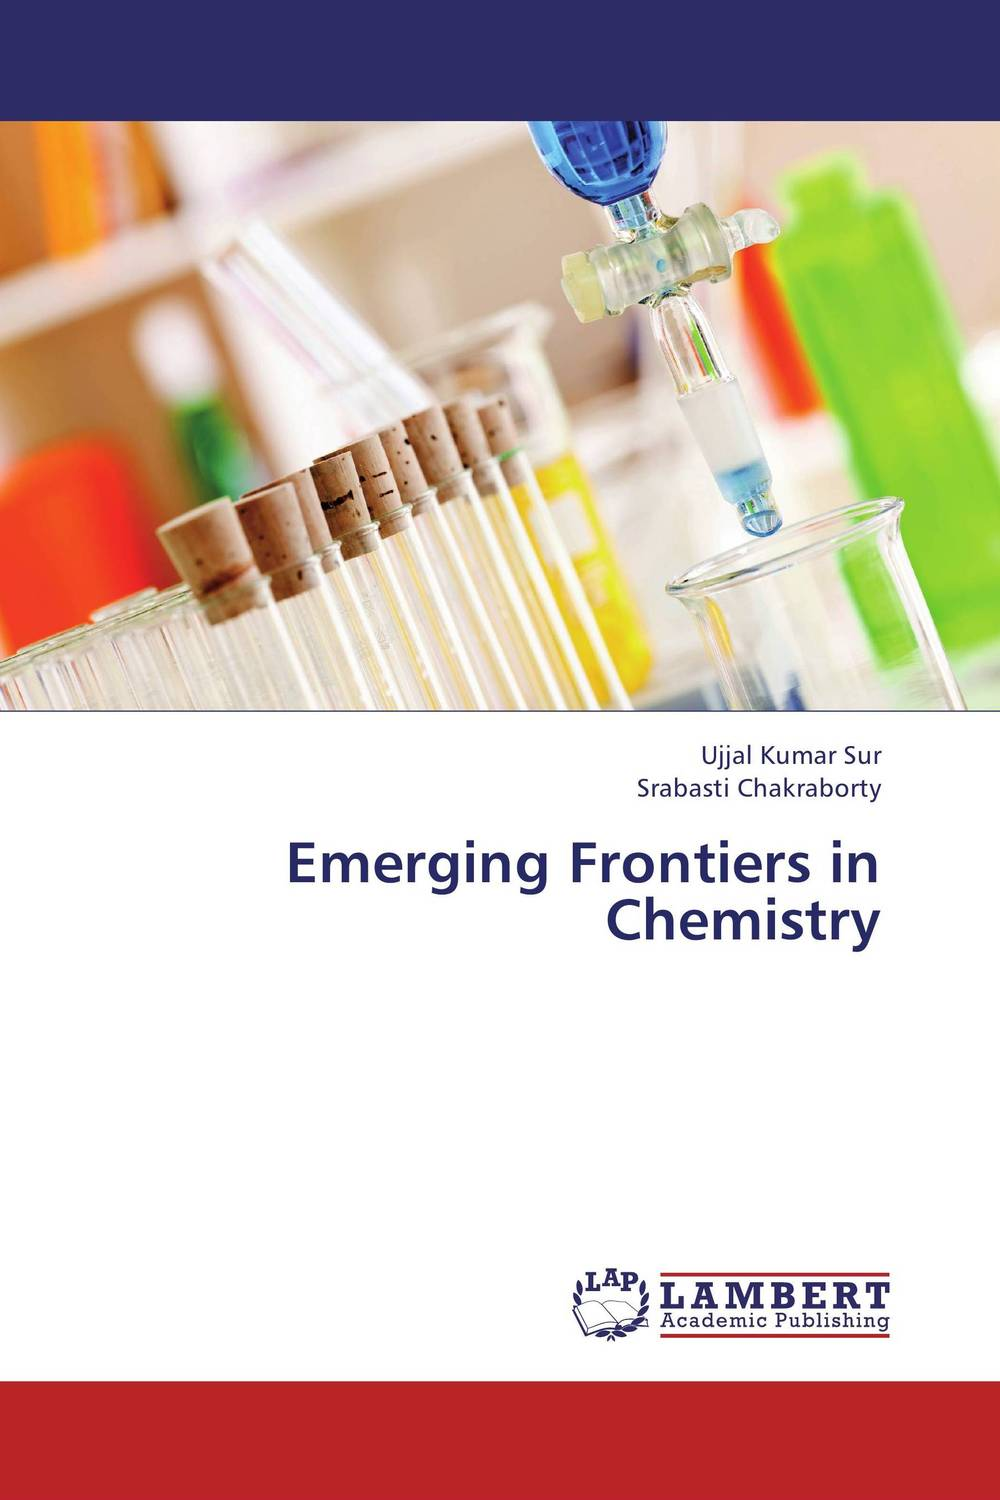 Emerging Frontiers in Chemistry investigatory projects in chemistry